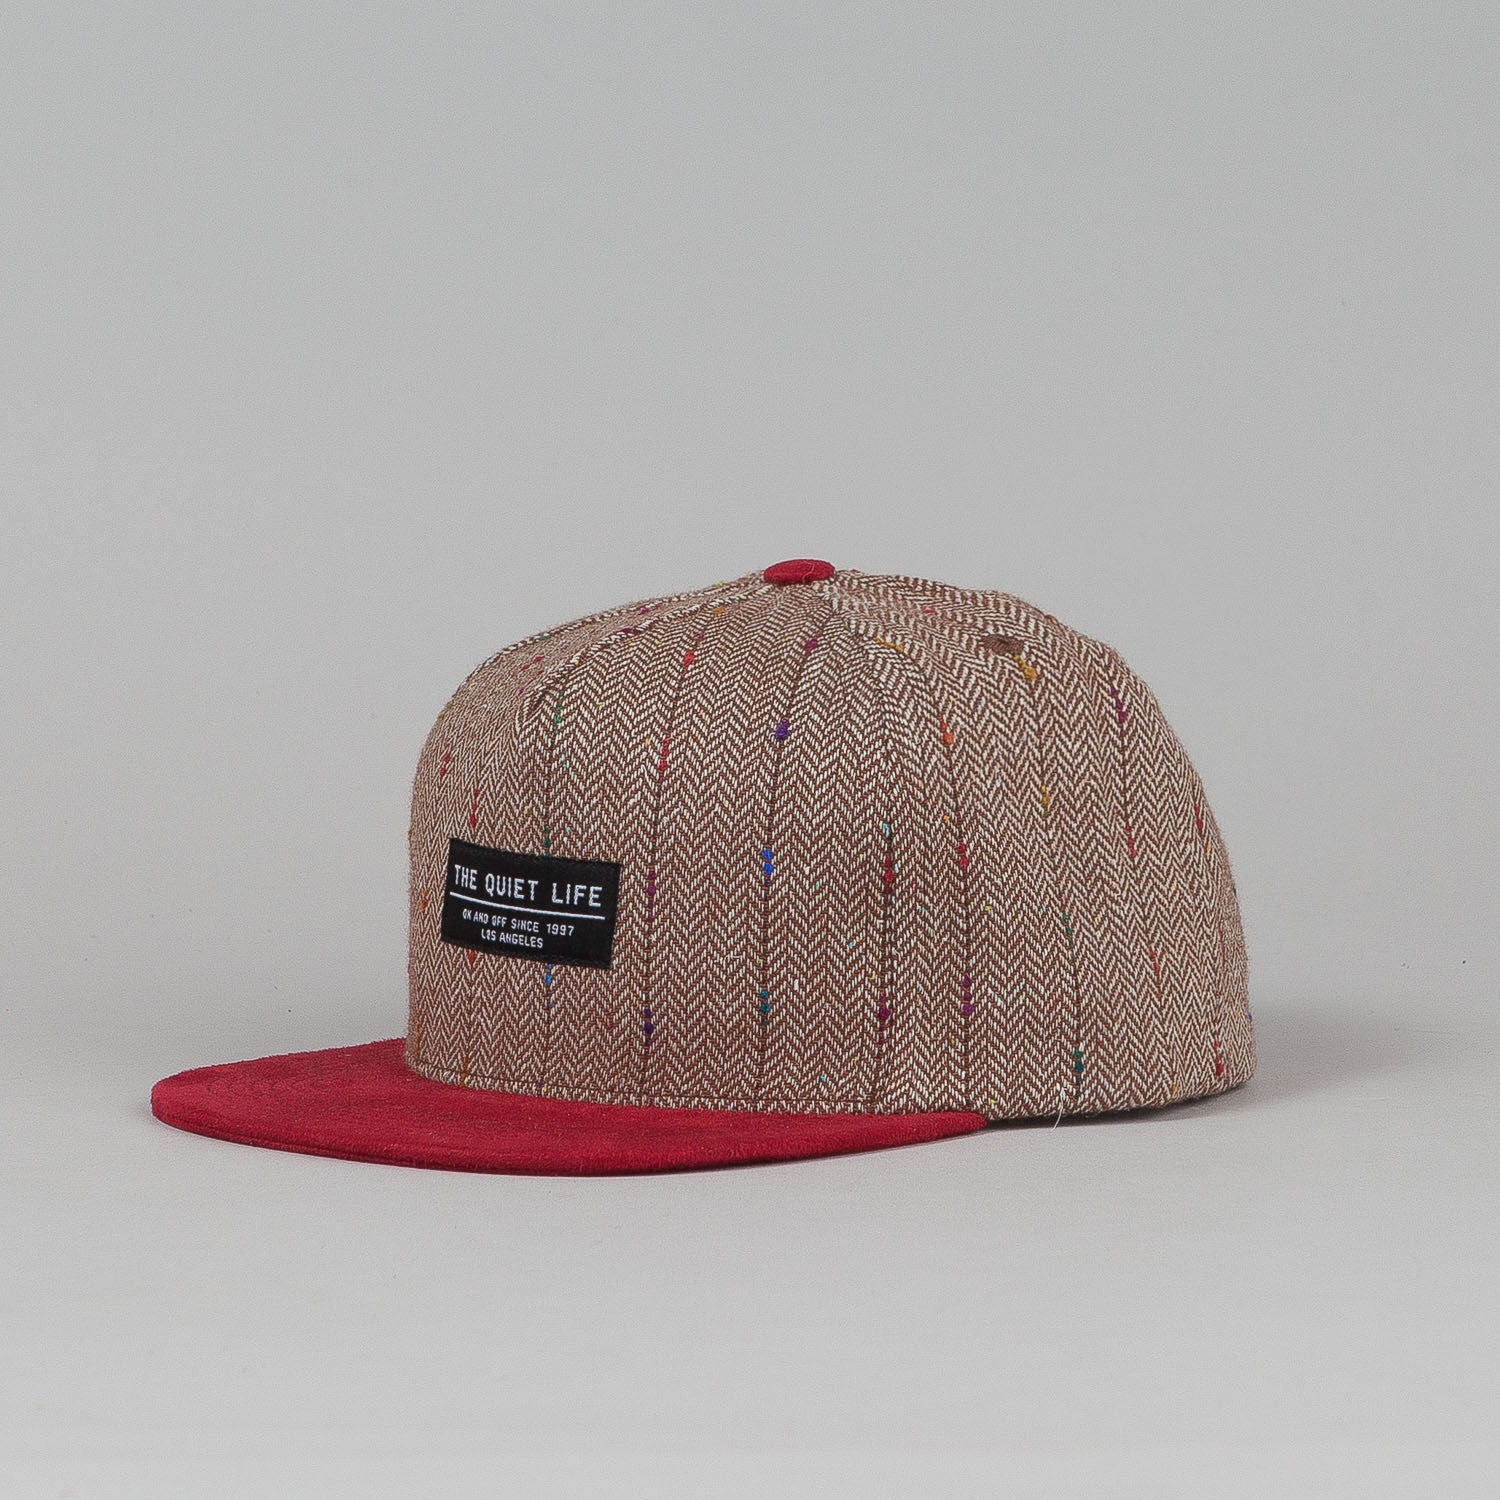 The Quiet Life Murphy Tweed Snapback Cap